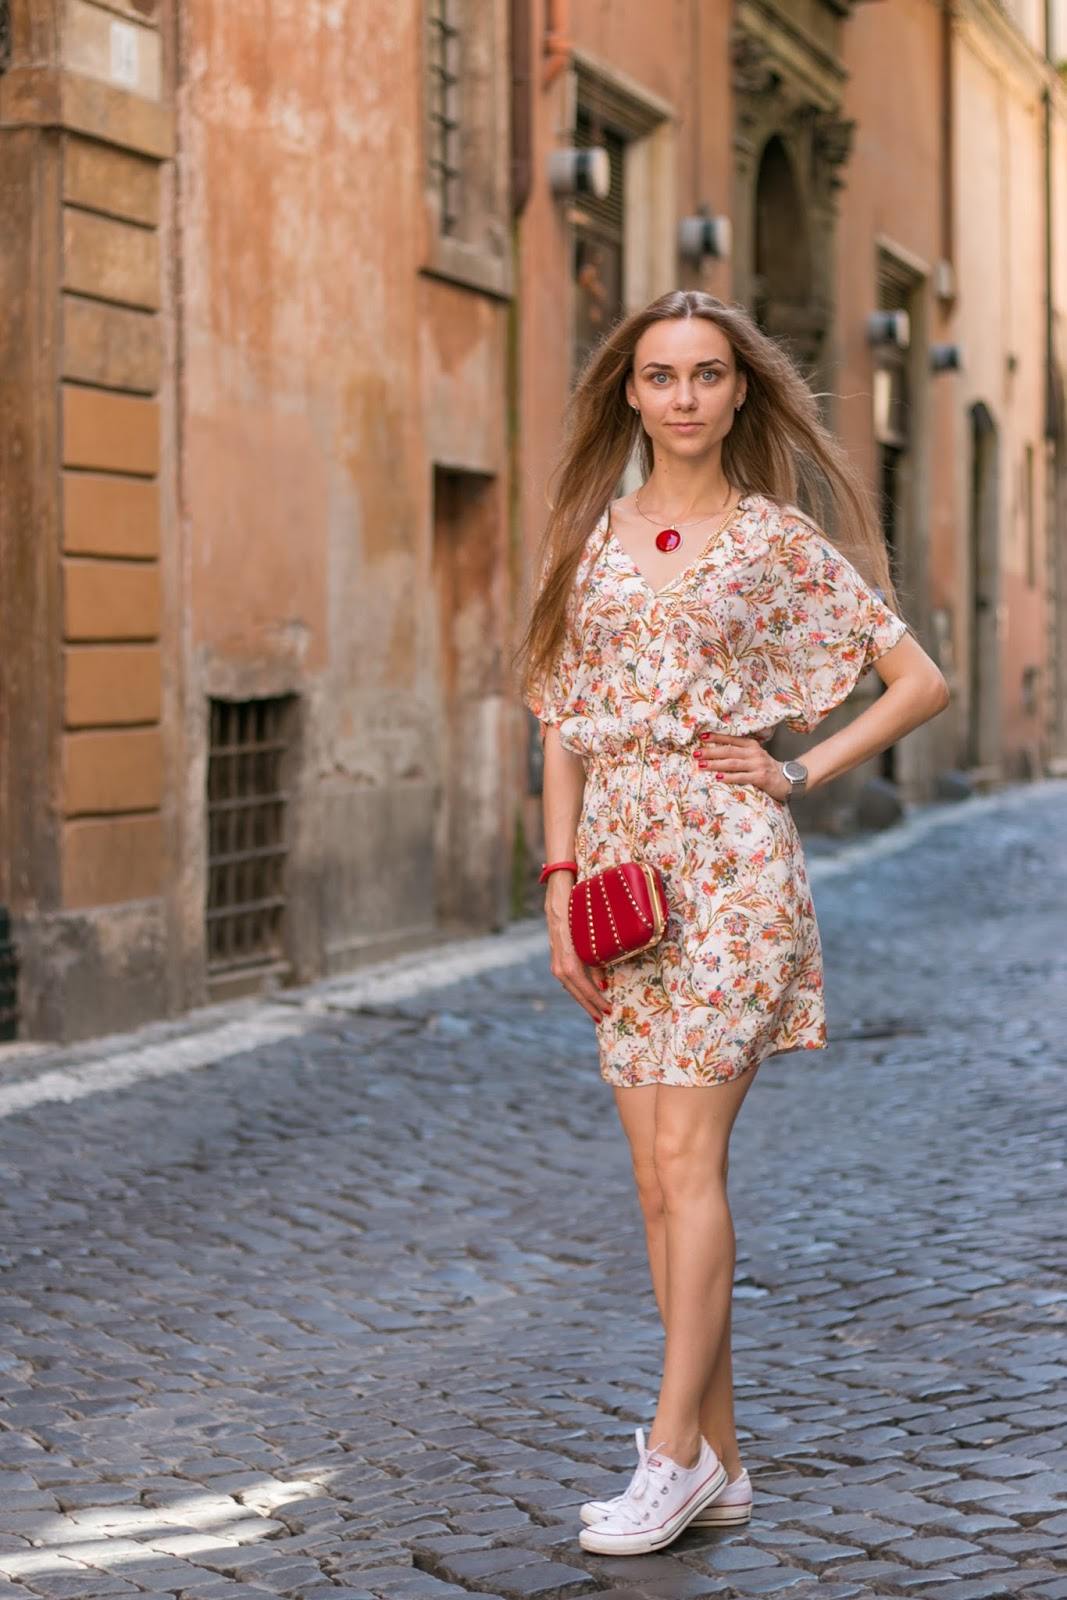 LookOn, look, lookbook, outfit, outfits, ootd, wiw, wiwt, style, fashion, fashion blog, fashion blogger, inspiration, floral dress, white dress, white sneakers, red clutch-box, necklace, wiw, streetstyle, fashionblogger, styleblogger, summer outfit